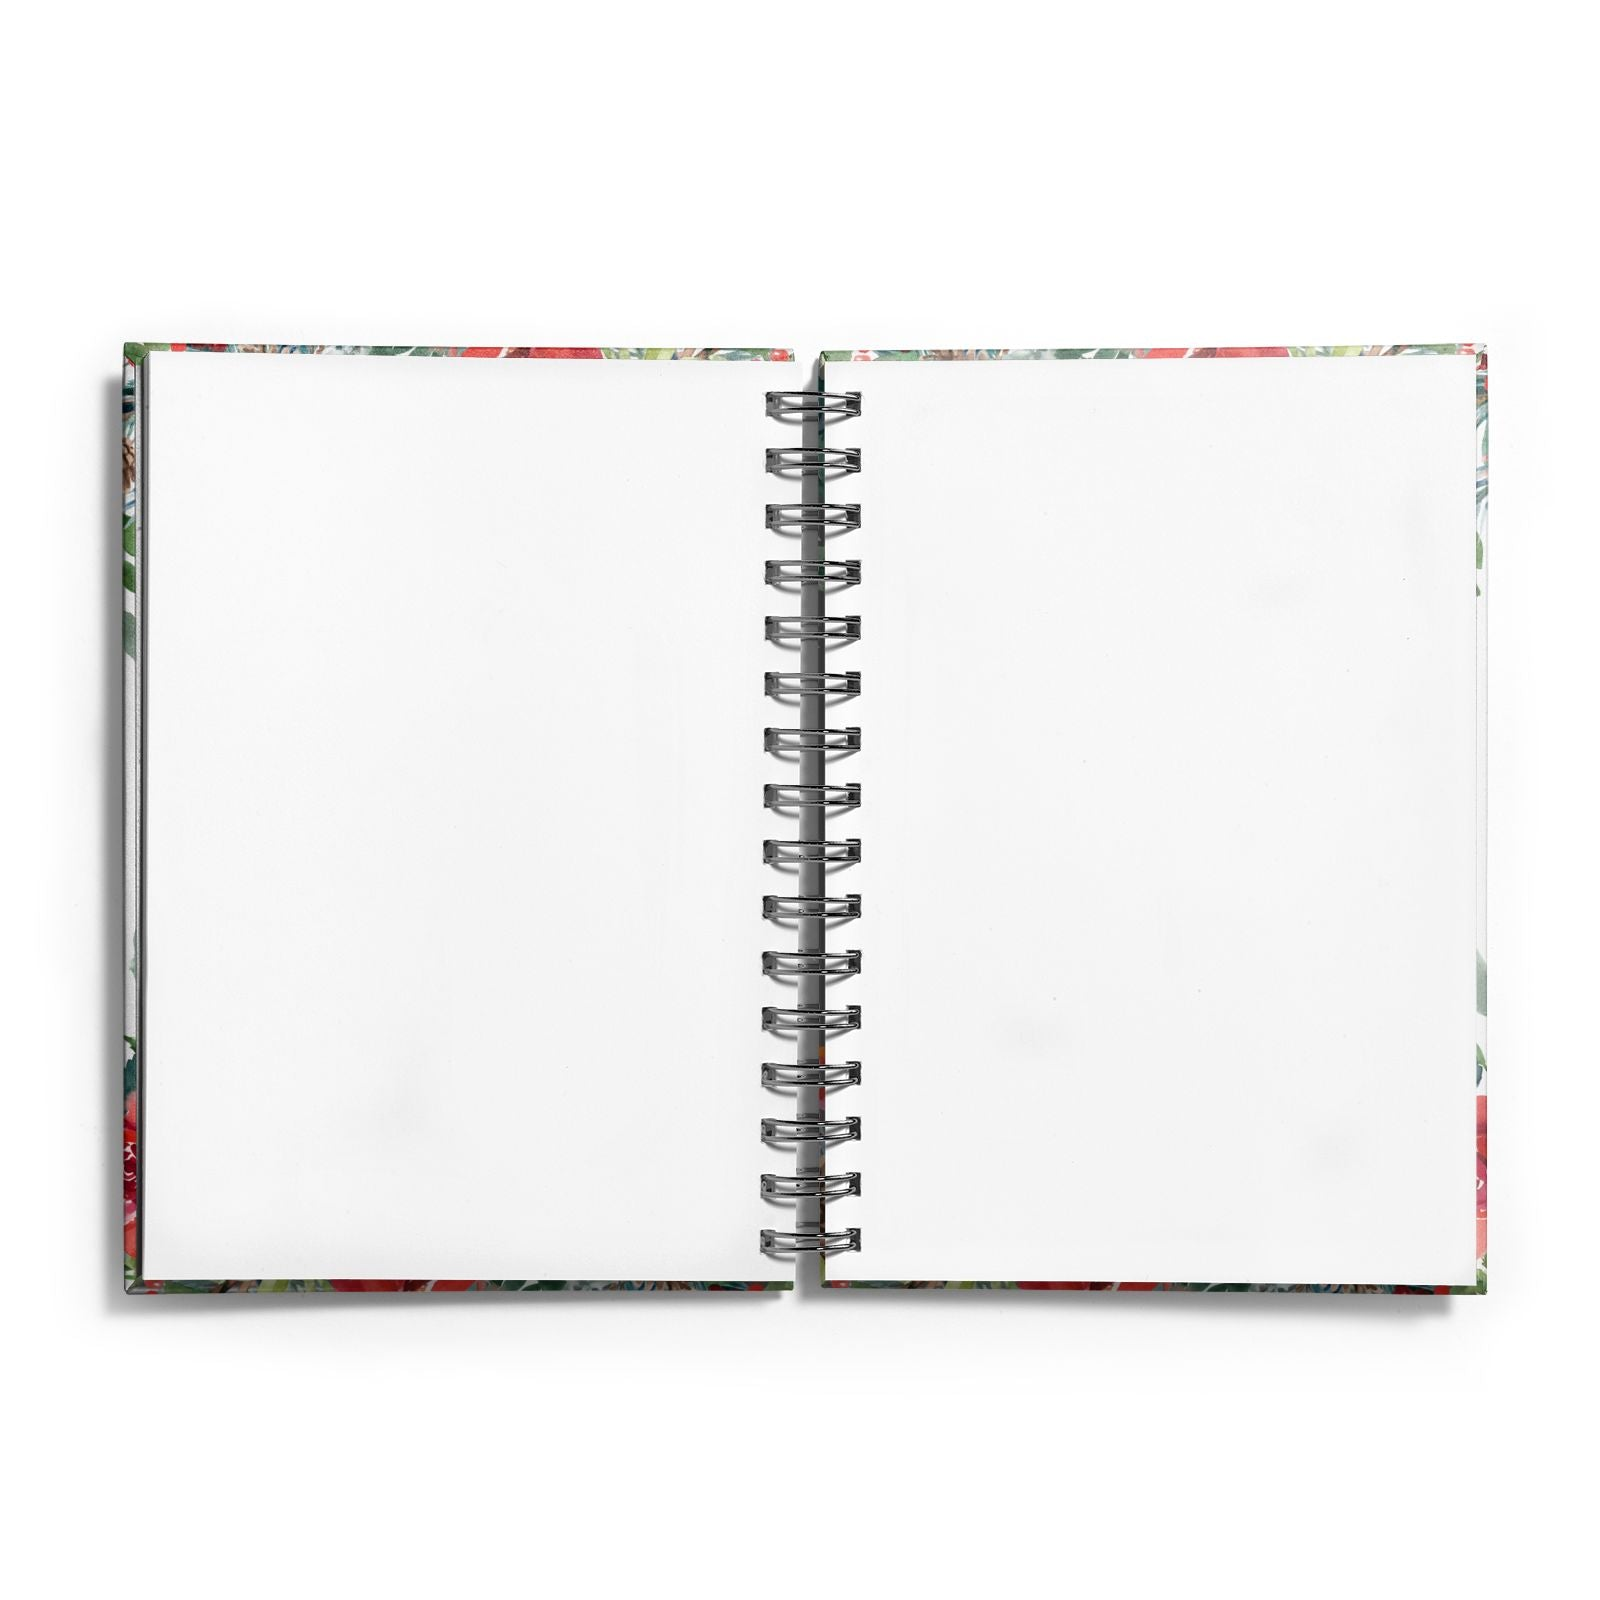 Personalised Floral Winter Arrangement Notebook with Silver Coil and Plain Paper